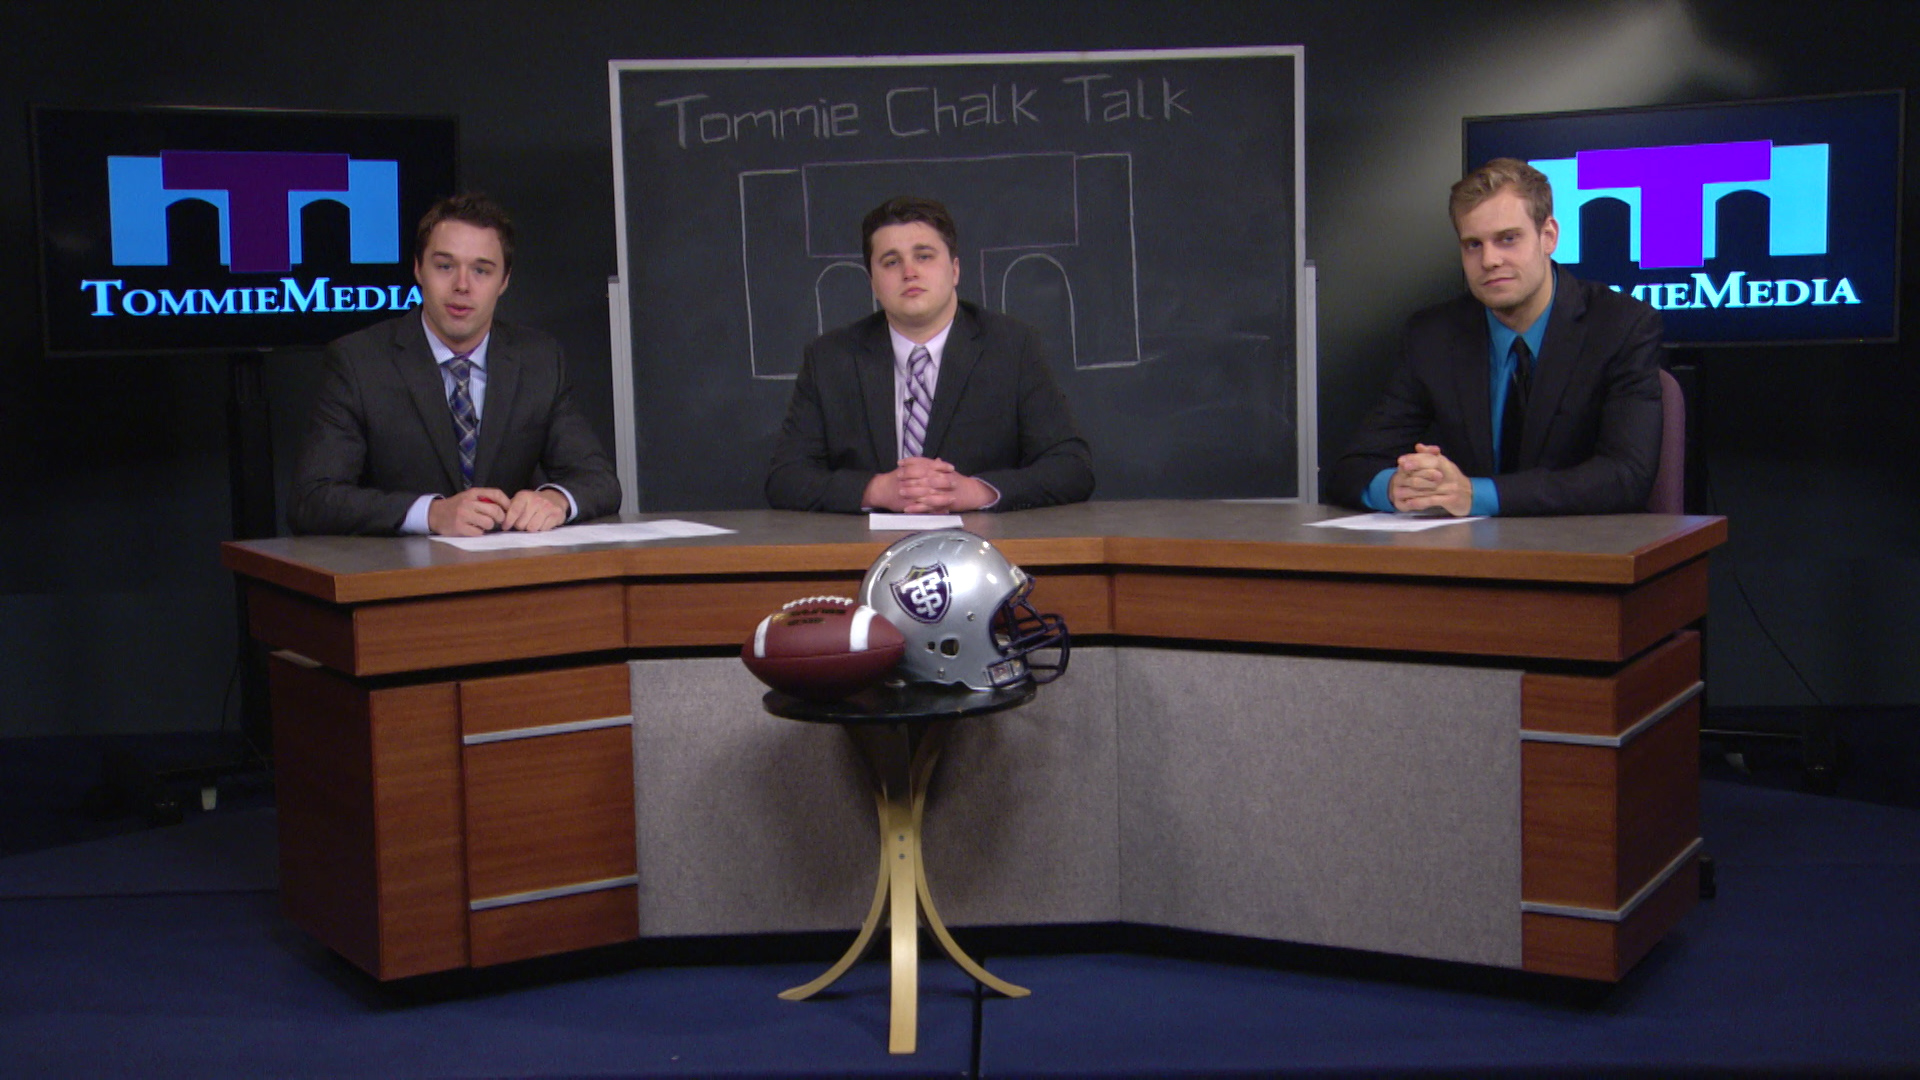 Tommie Chalk Talk - Dec. 15, 2015